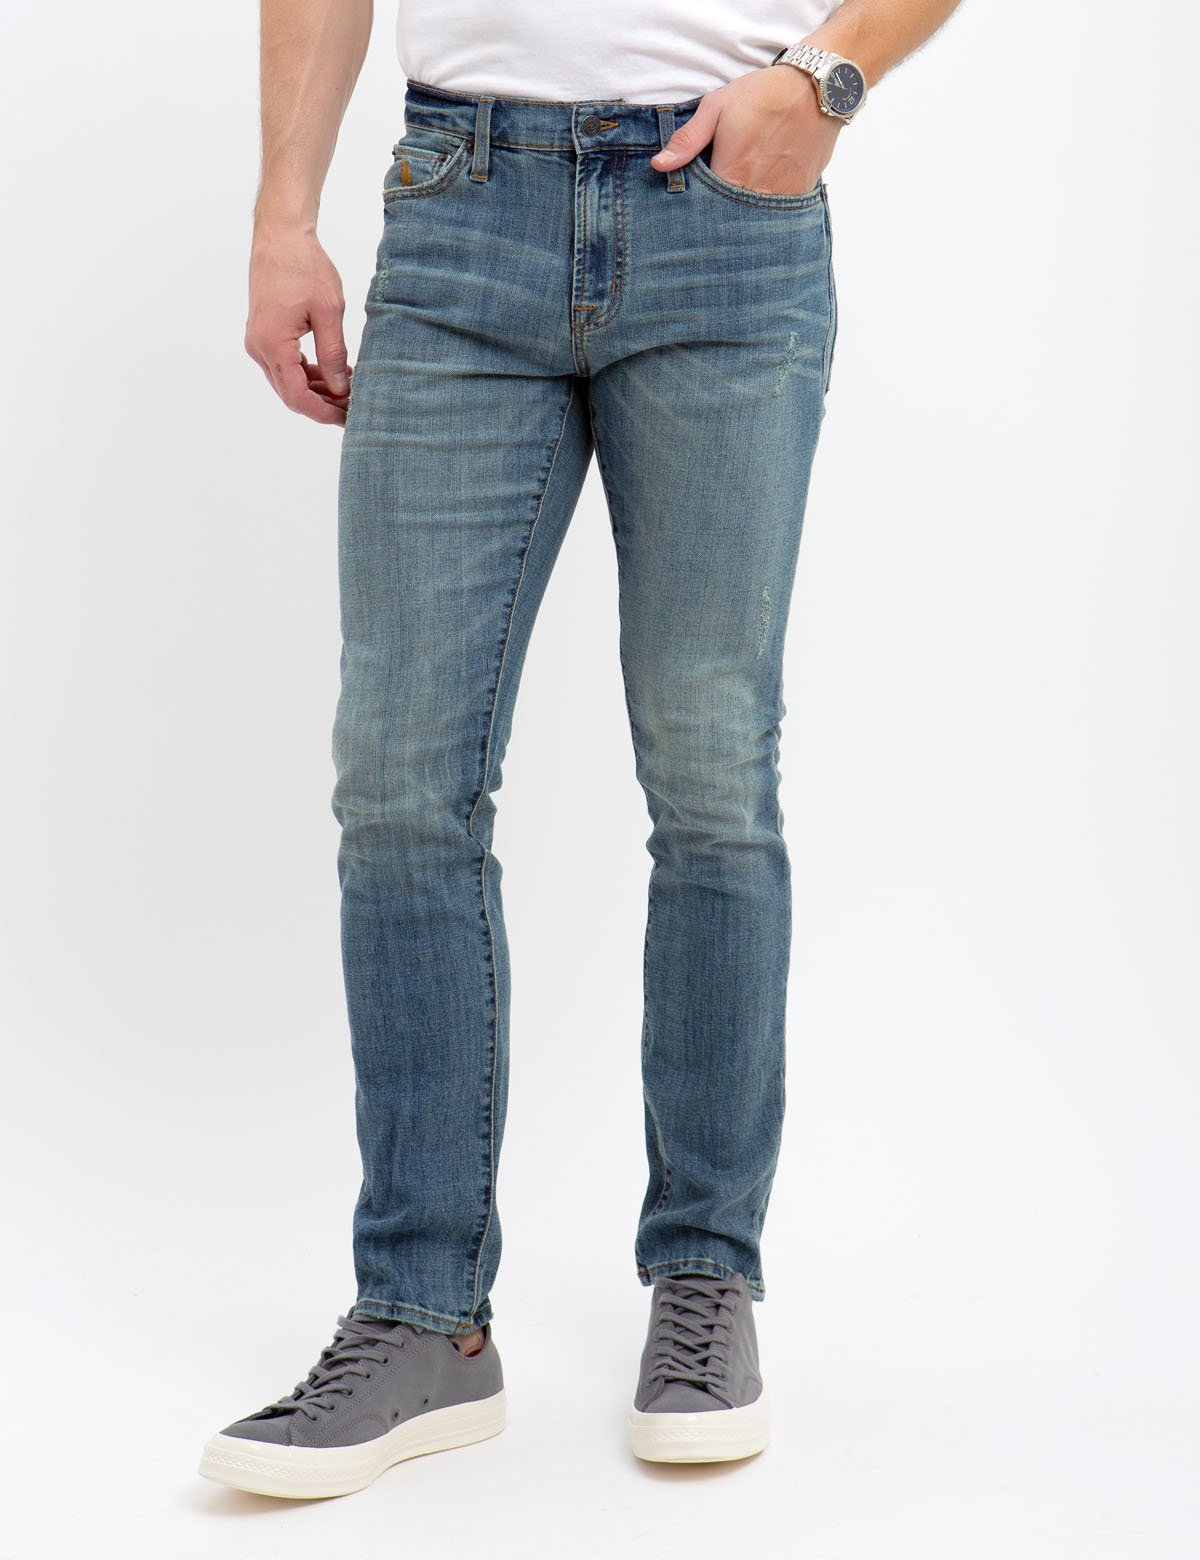 STRETCH SLIM SKINNY JEANS - U.S. Polo Assn.